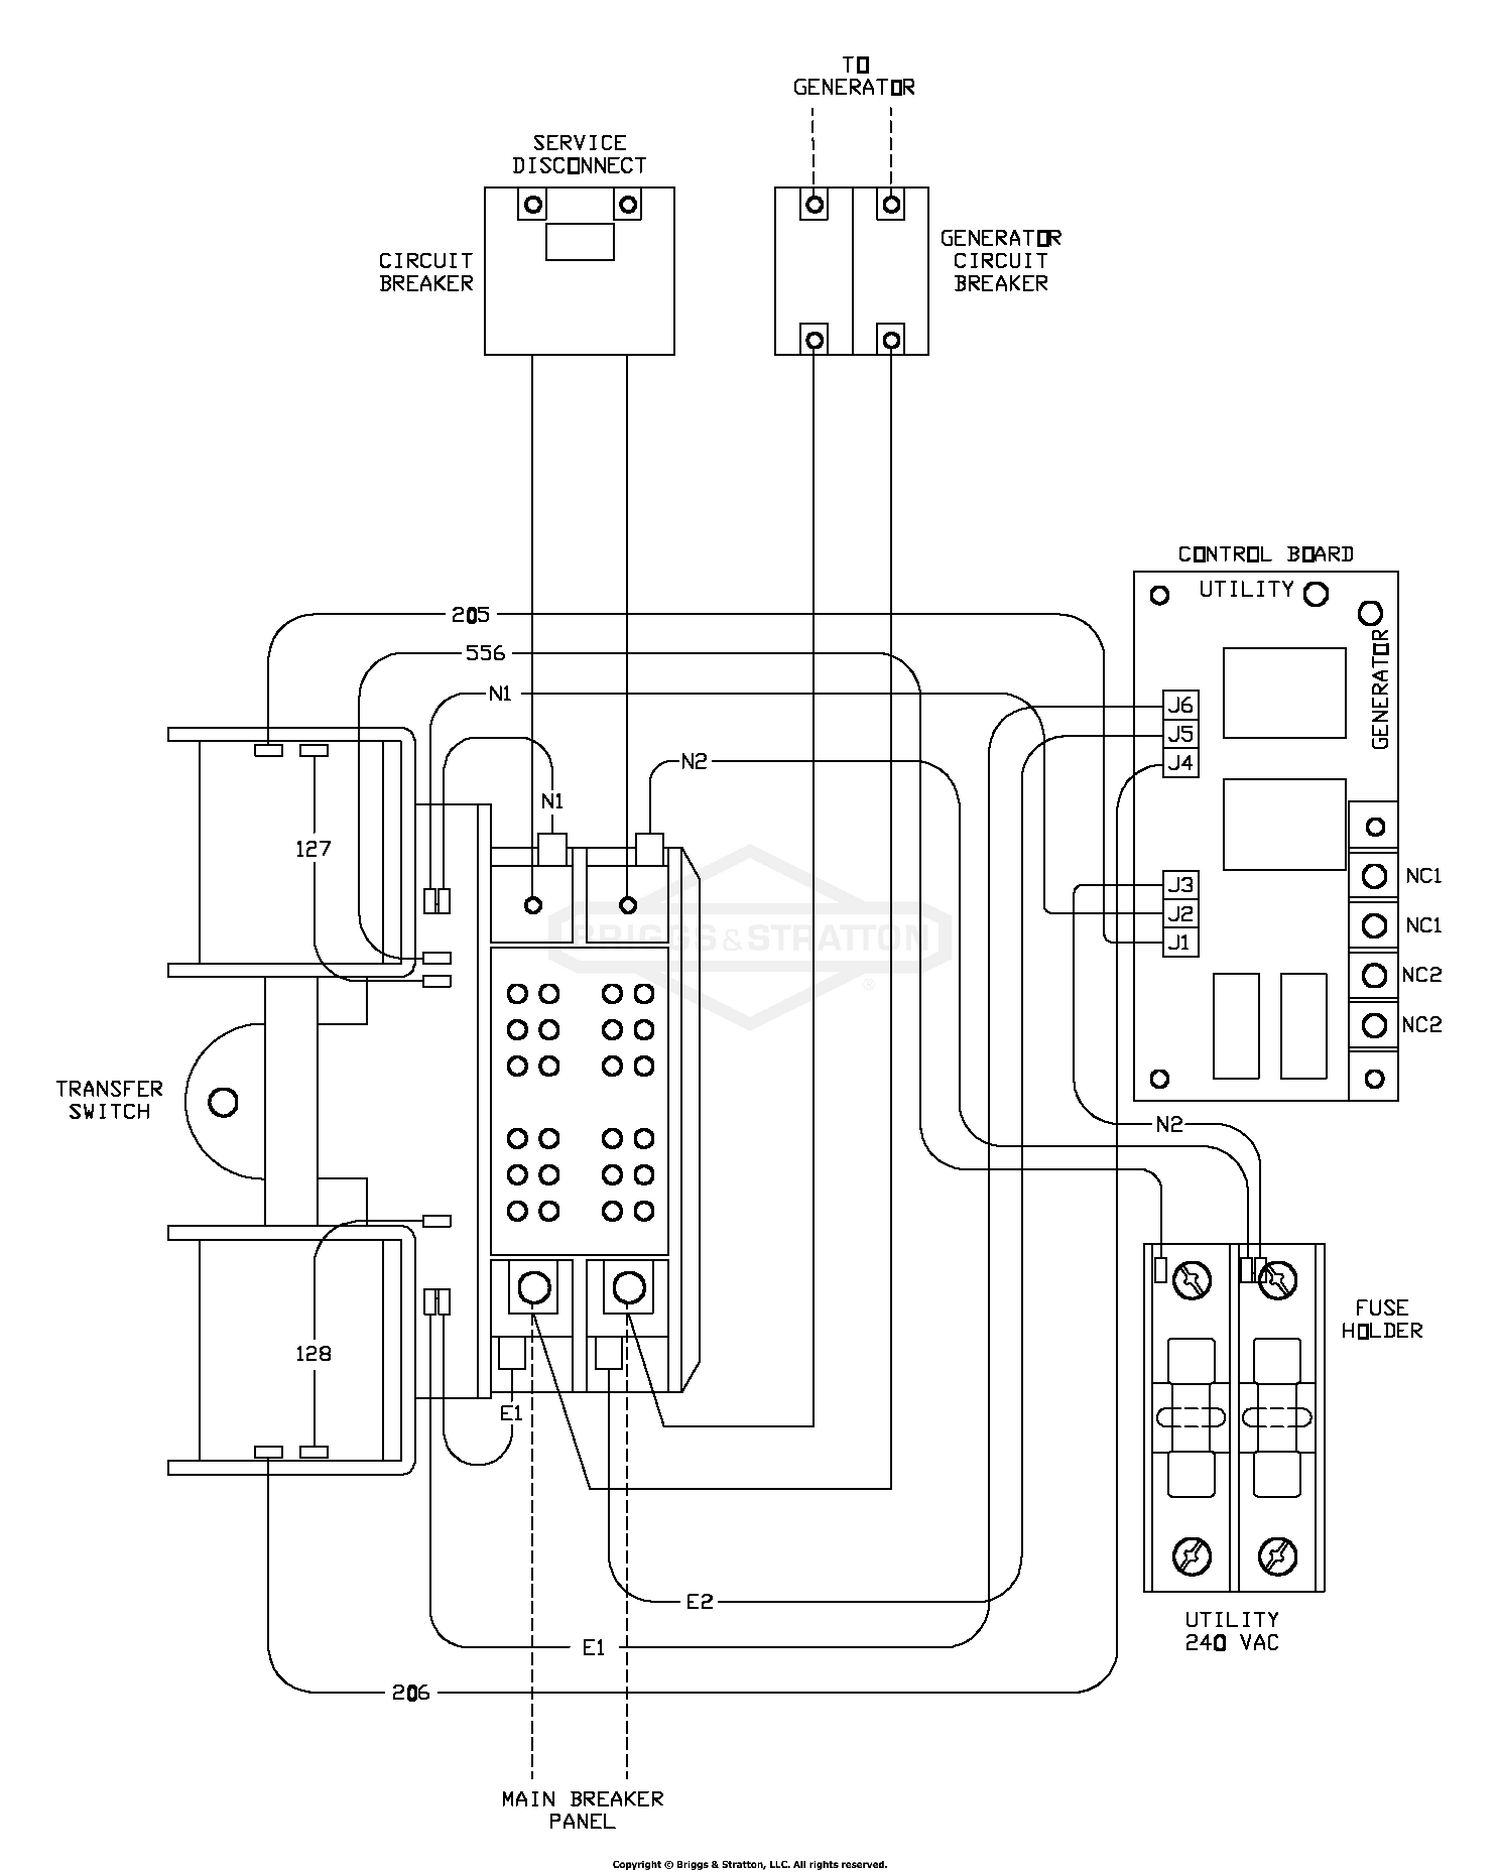 Wiring Diagram - Transfer Switch